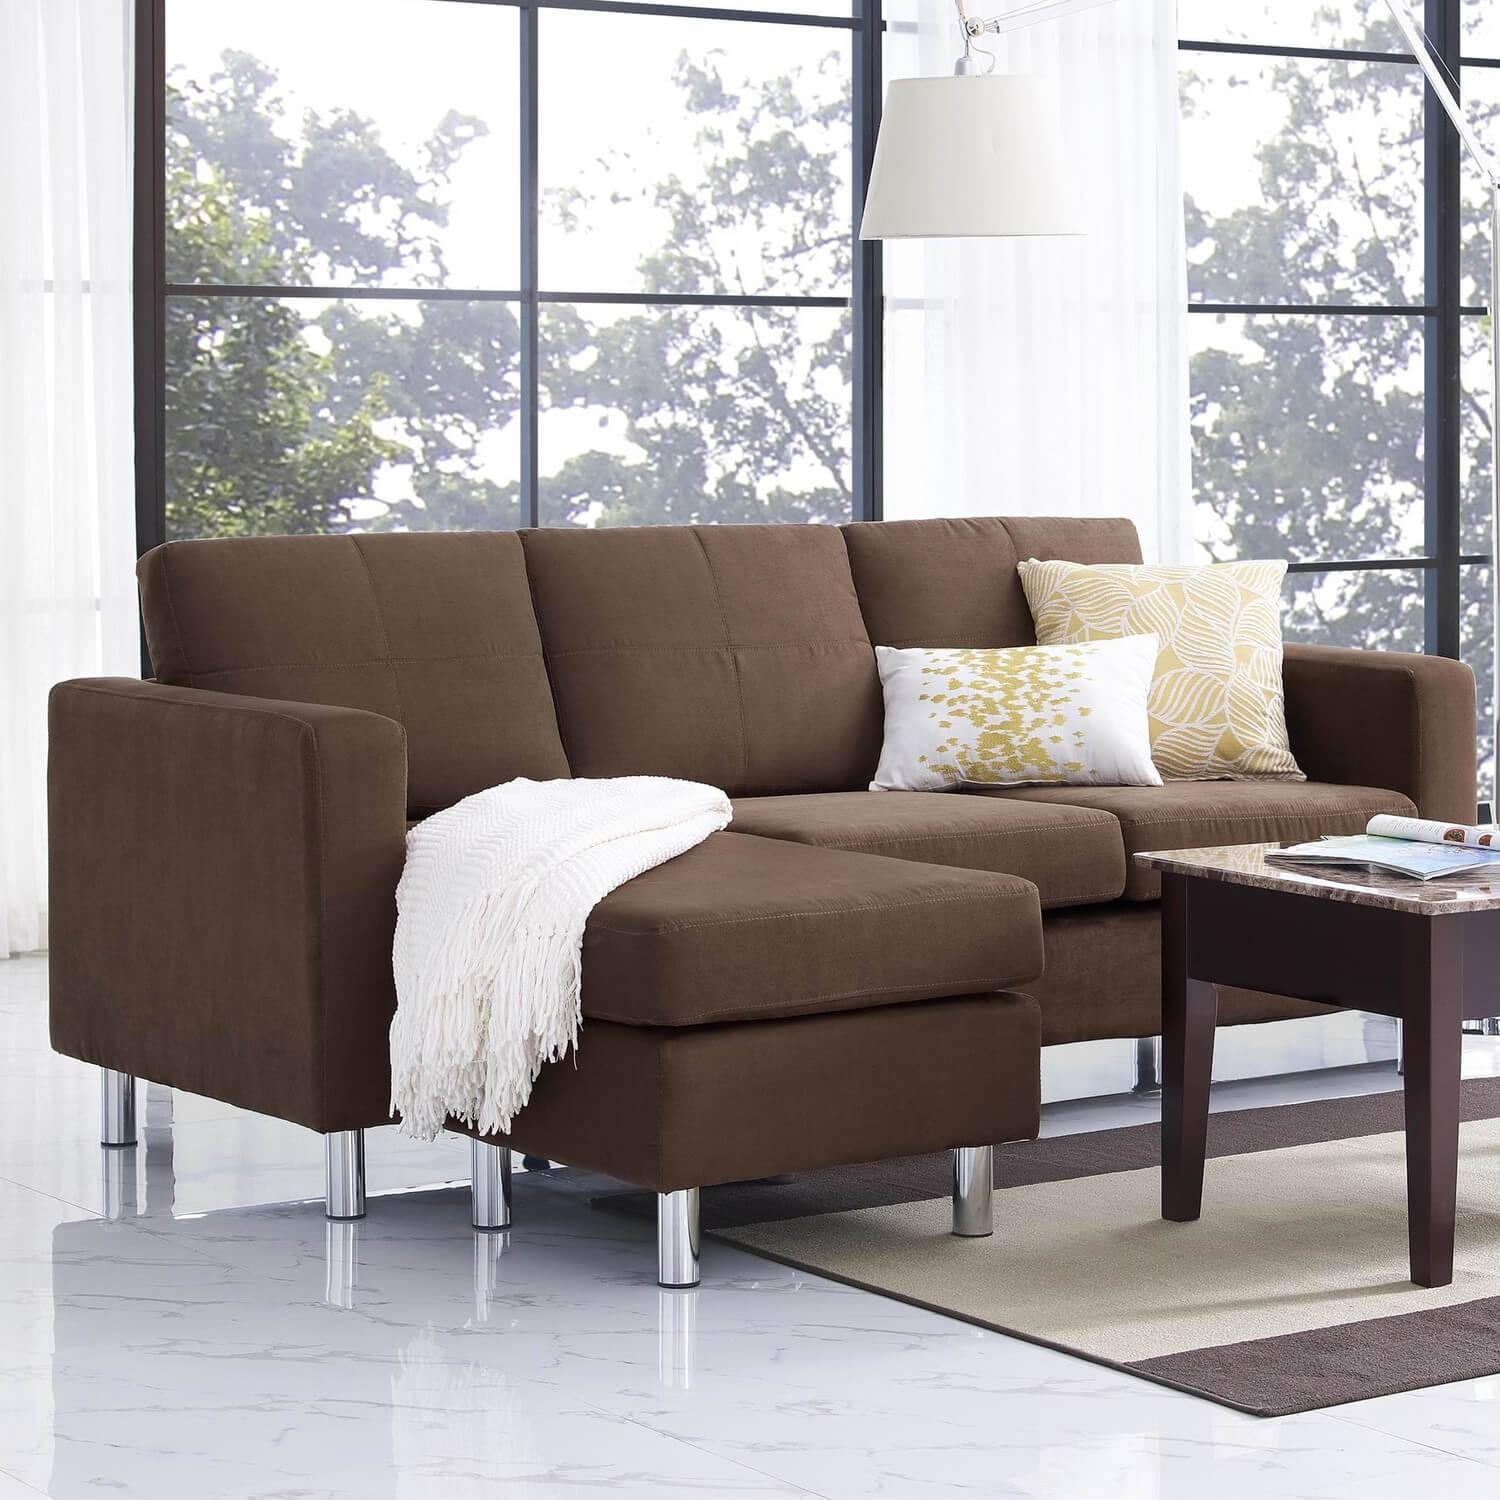 sectional sofas and recliners best sofa bed sleepers 30 ideas of for small spaces with